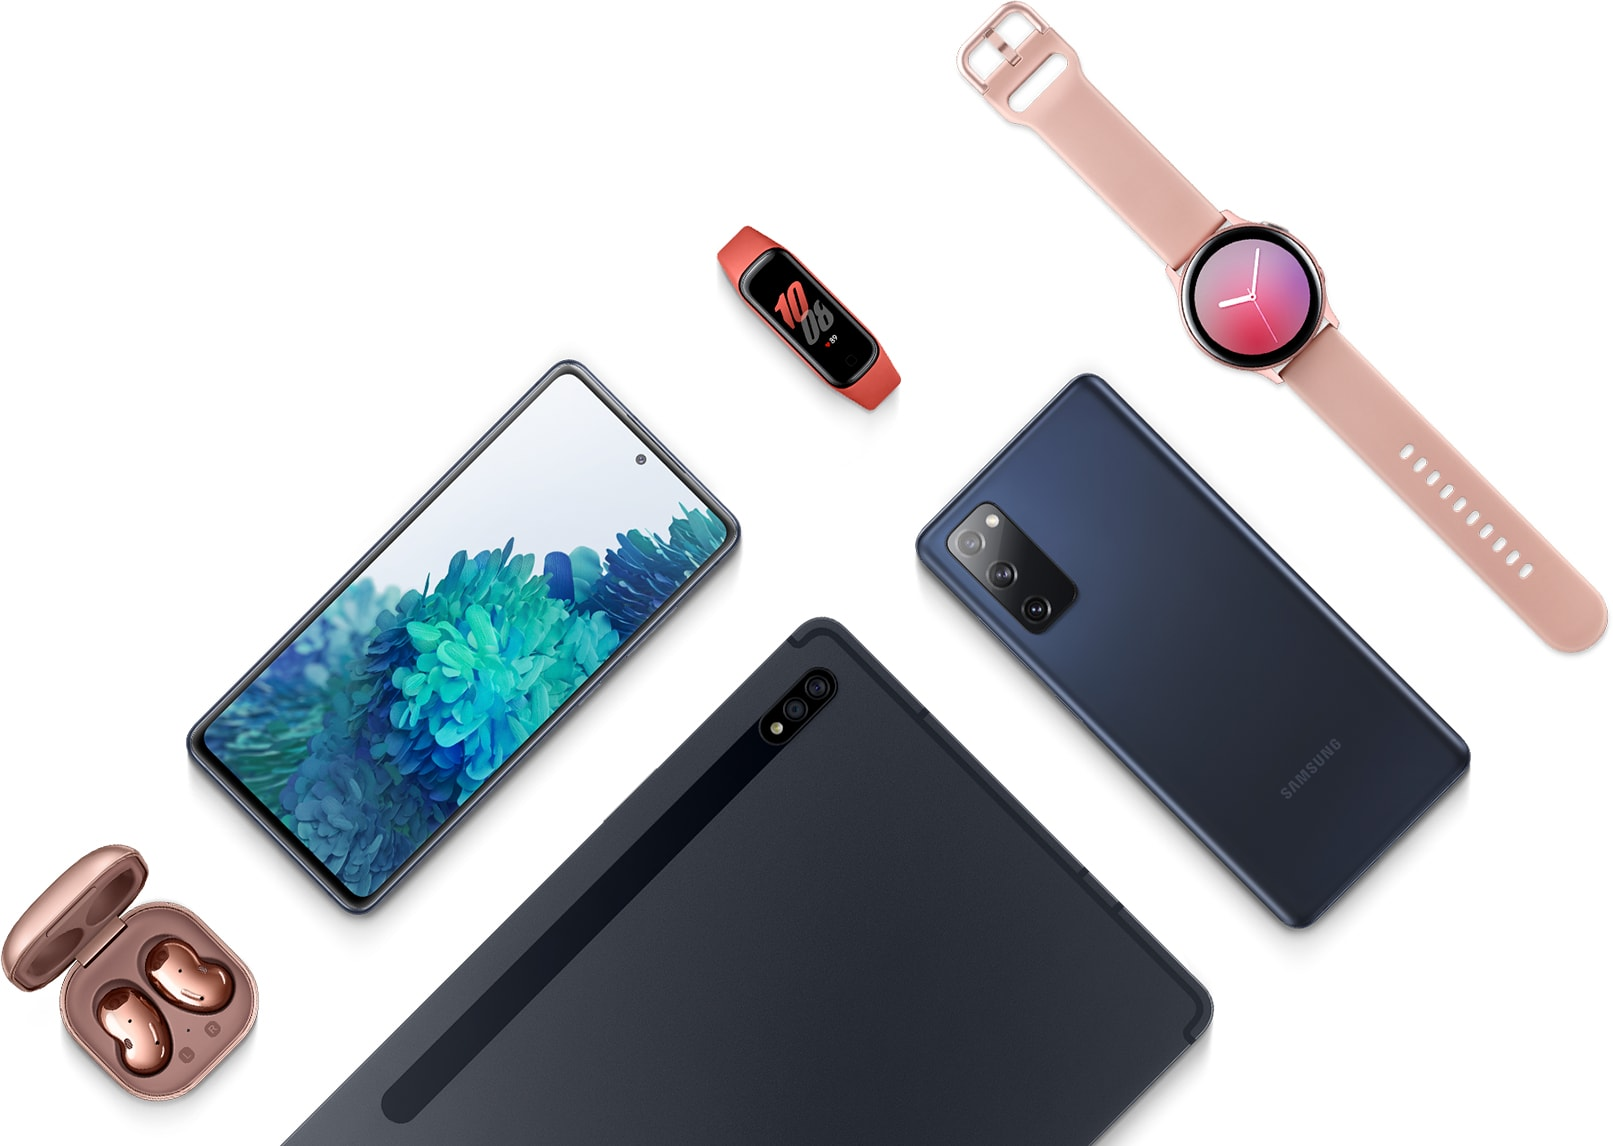 Description: A flatlay with the Galaxy S20 FE in Cloud Navy seen face up, Galaxy S20 FE in Cloud Navy laying facedown, Galaxy Tab S7 in Mystic Black, Galaxy Buds Live earbuds in Mystic Bronze, Galaxy Fit2 in Red, and Galaxy Watch Active2 in Pink Gold.